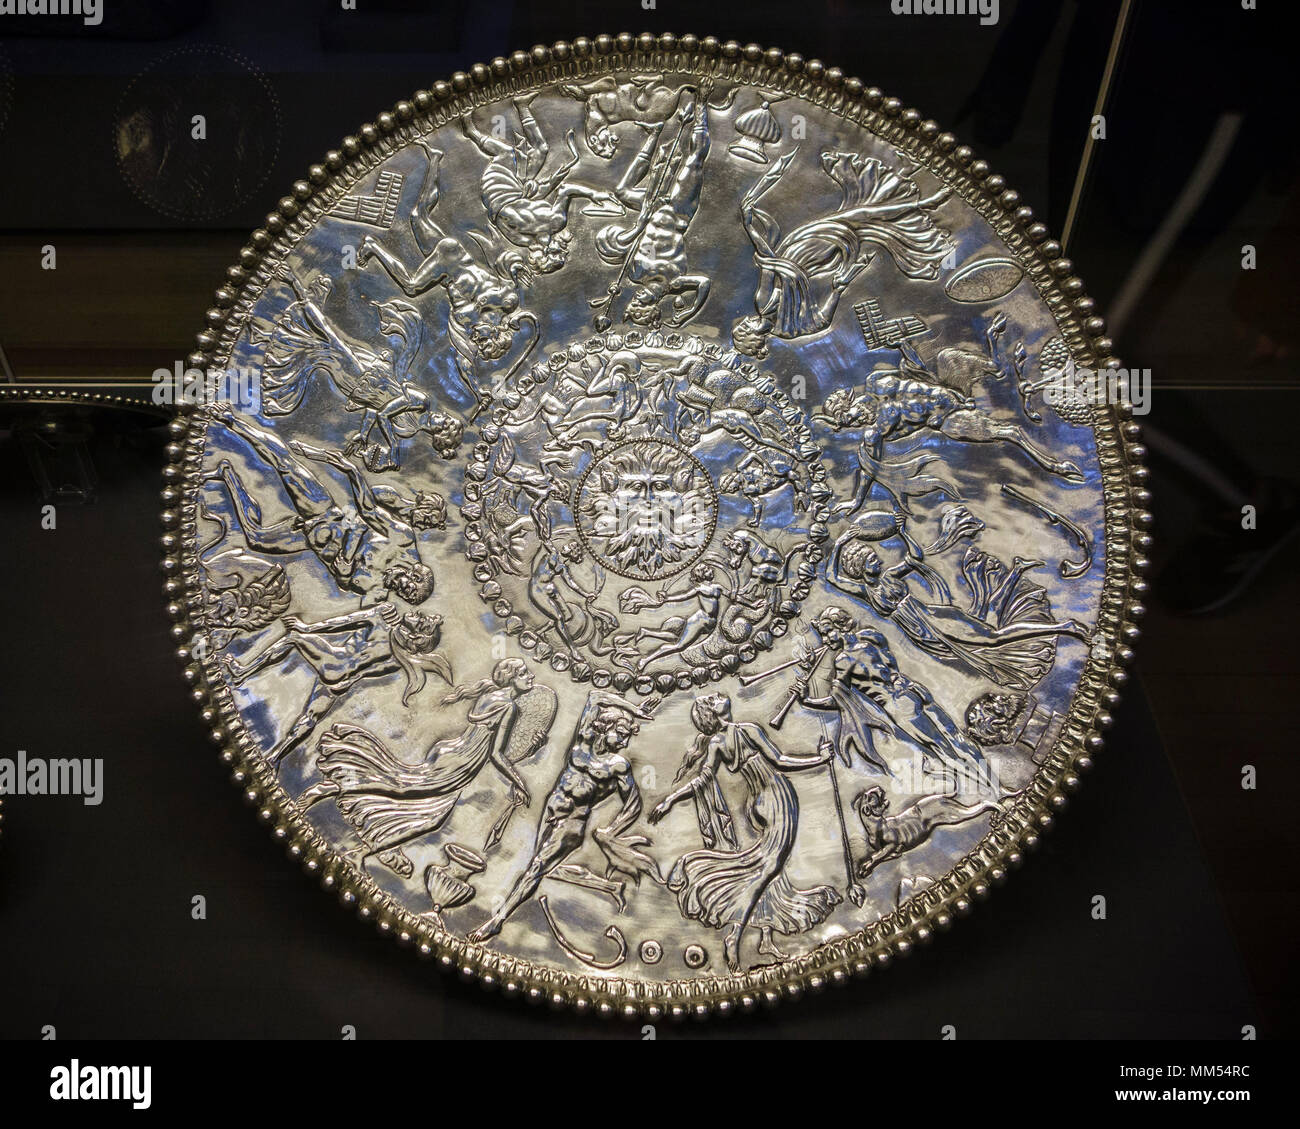 London. England. British Museum. The Mildenhall Great Dish, aka Neptune or Oceanus Dish, is a 4th century AD Roman Bacchic silver platter, and is the  - Stock Image